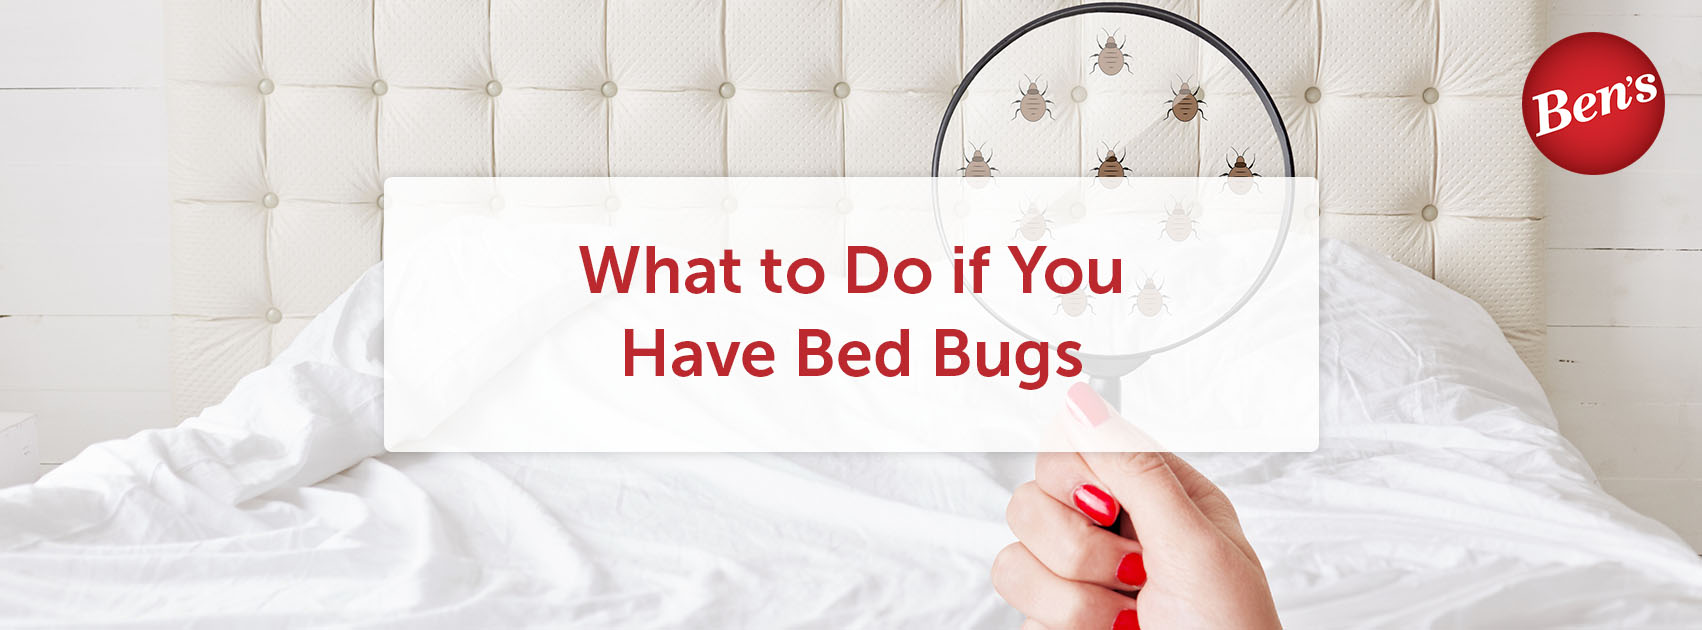 Woman using a magnifying glass to look for bed bugs.